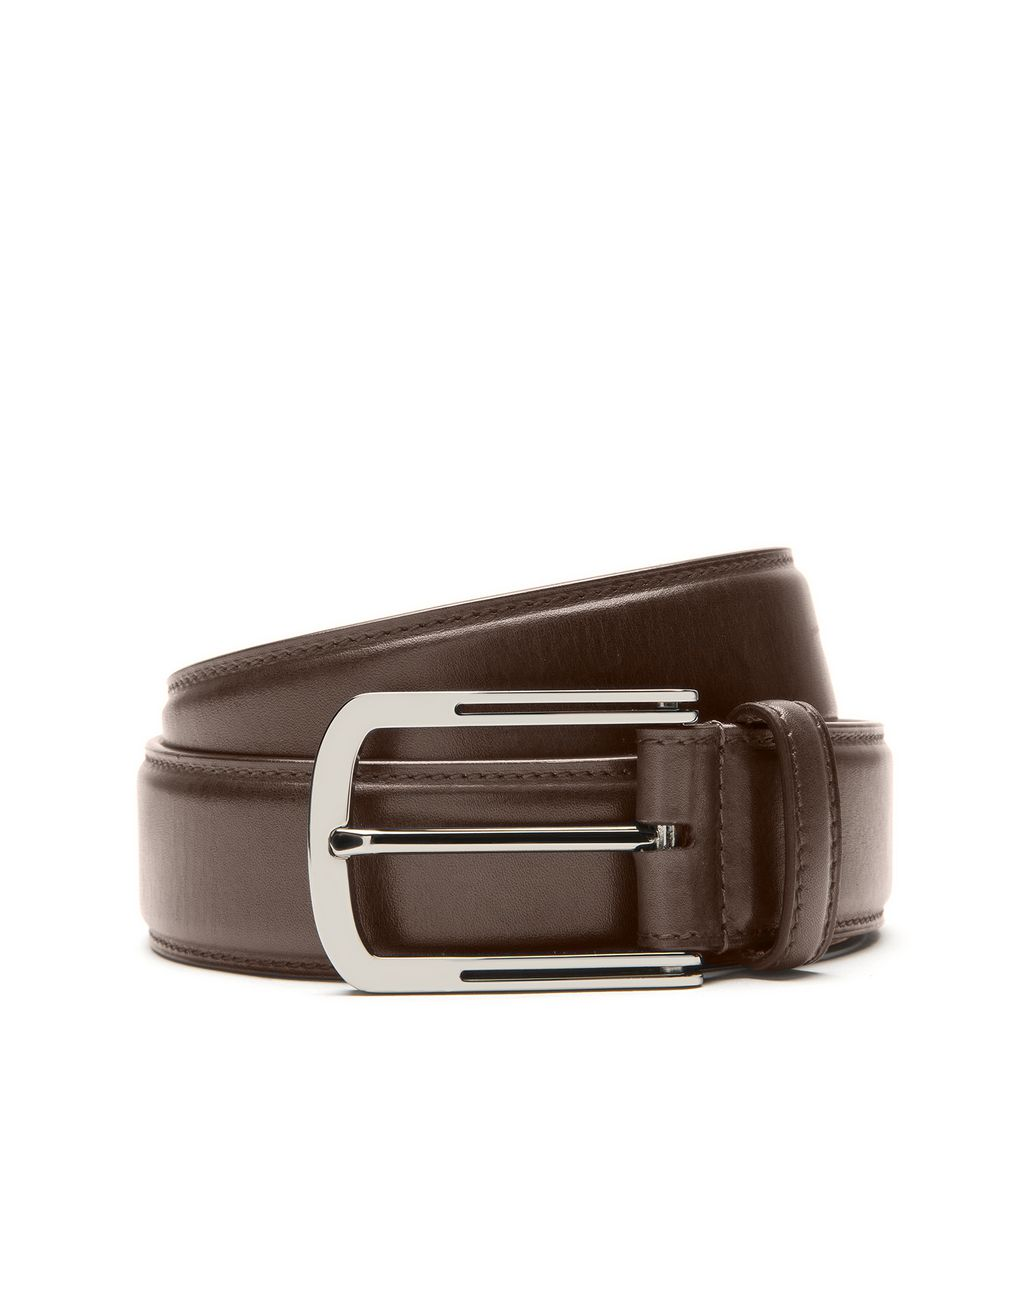 BRIONI Brown Belt in Calfskin Leather Belt U r